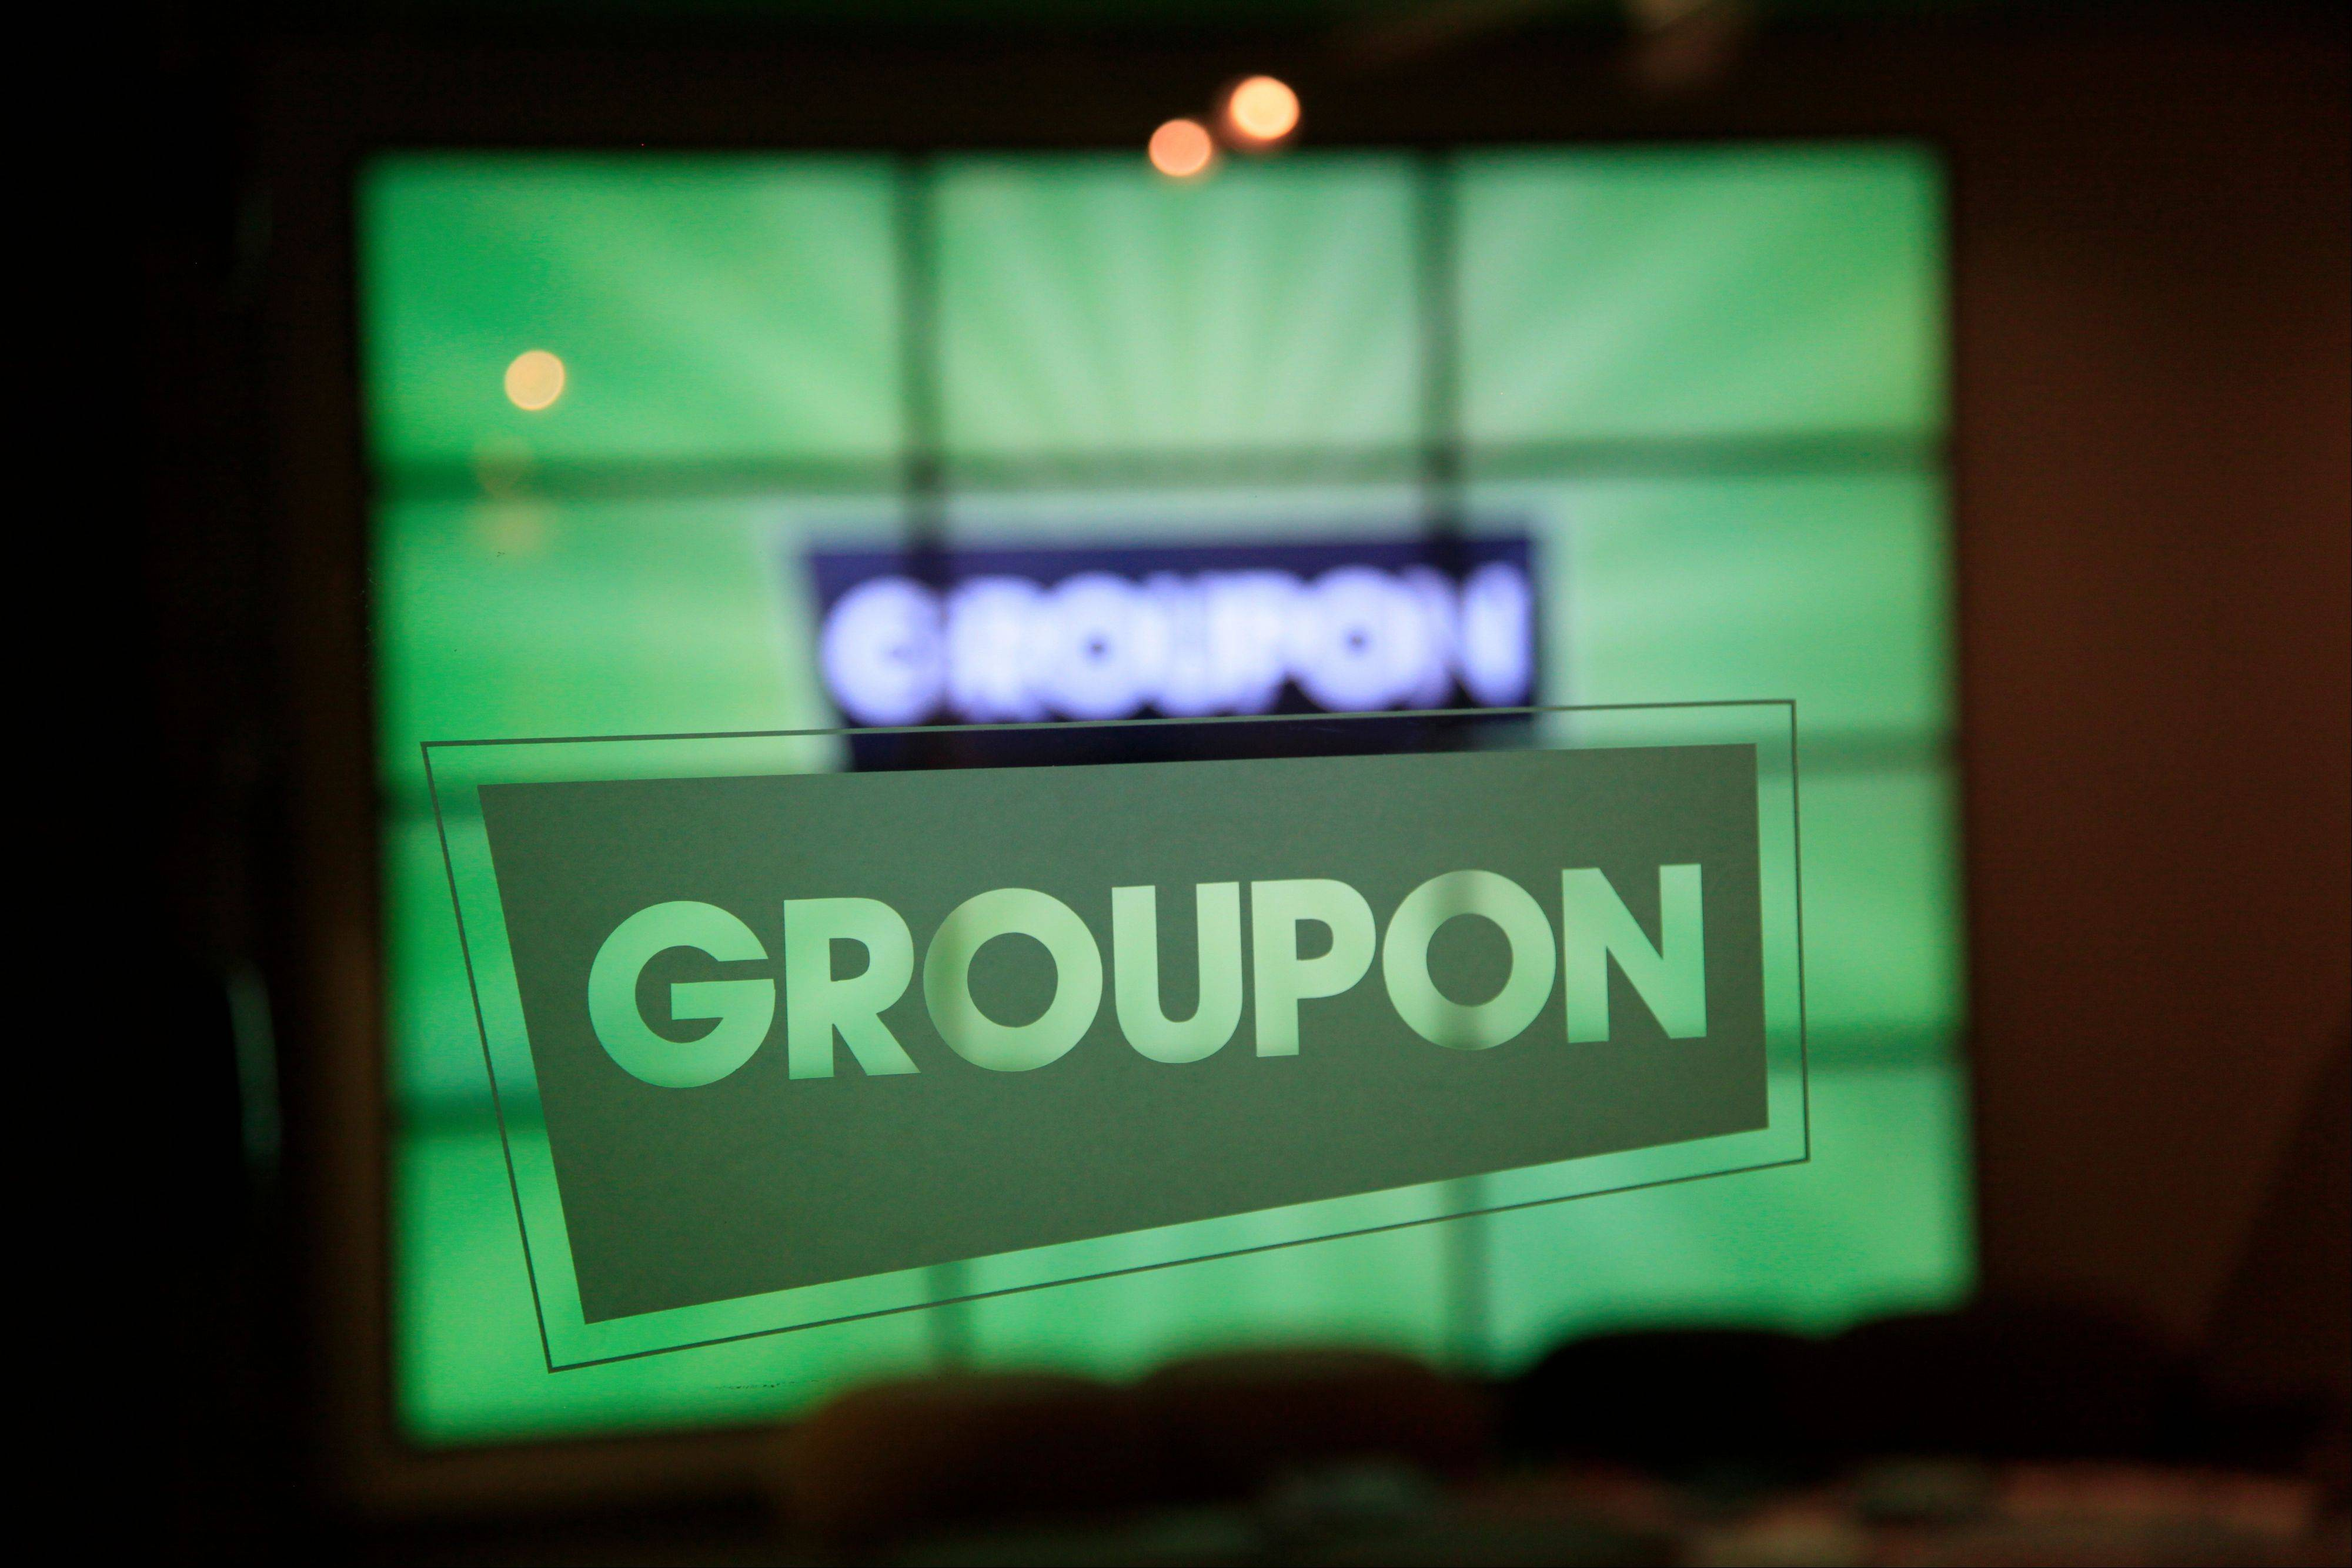 The Groupon logo etched in glass is shown in the lobby of the online coupon company's Chicago offices.